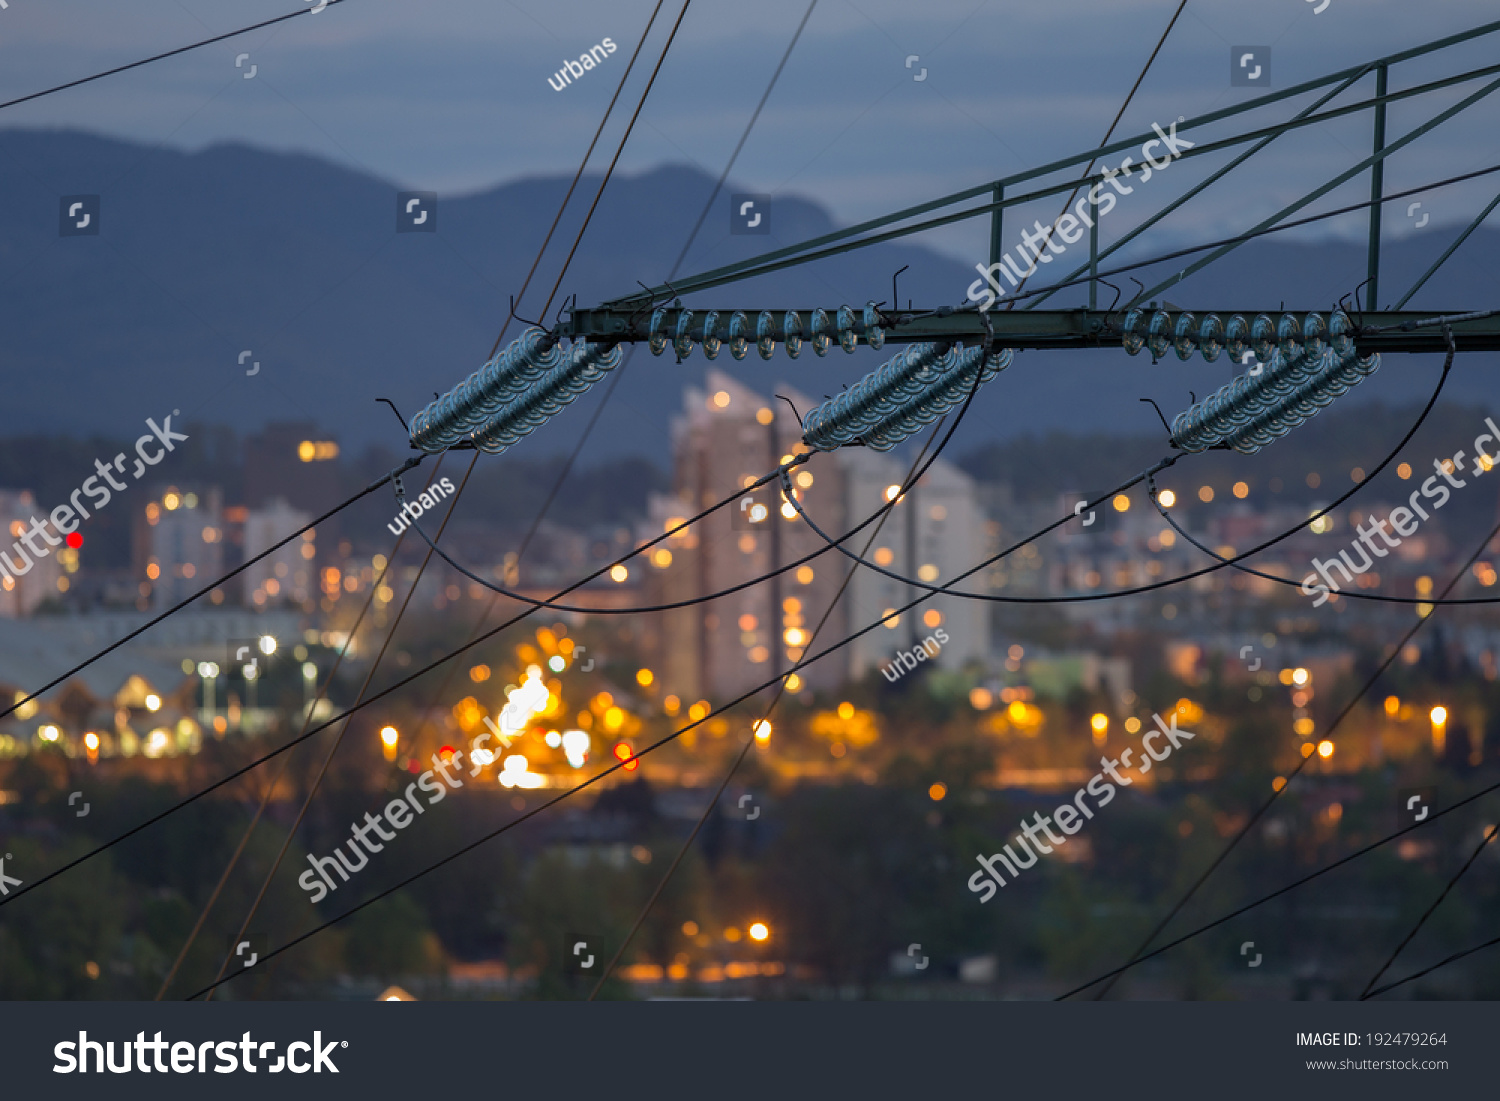 Transformer Parts additionally Iulian Florin Vladu Adaptation Technology And Science Technology Sub Programme Unfccc additionally Photovoltaic system further Desing Construction Of 33 Kv 11 Kv Lines besides 52c26t. on concept of energy transmission distribution 1